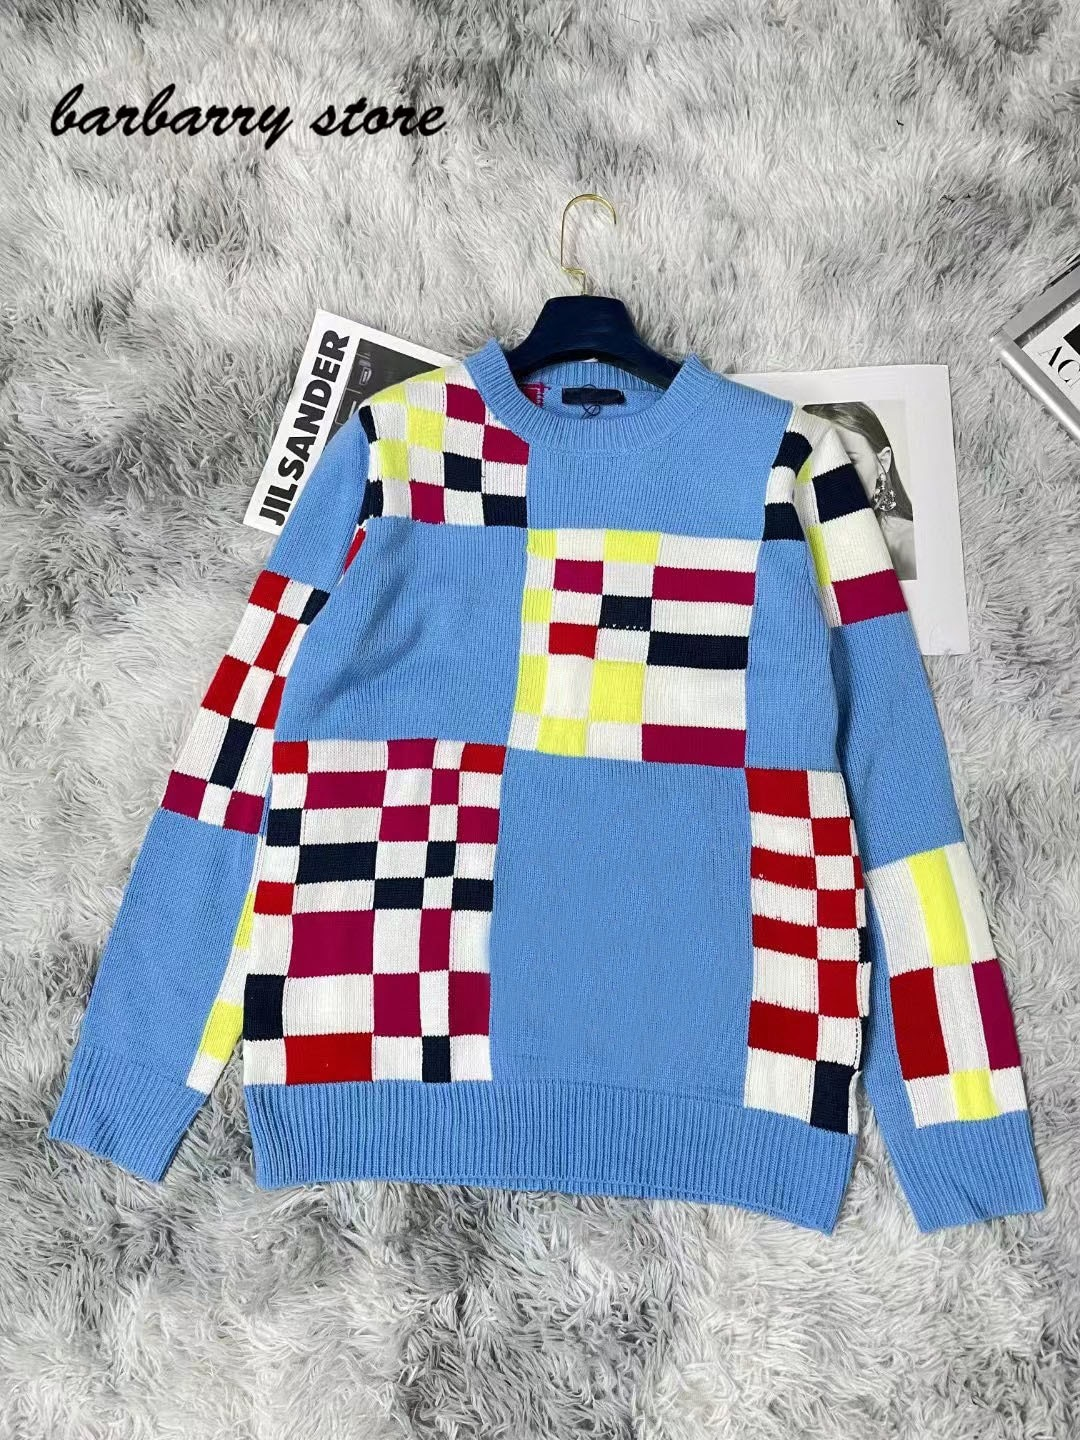 2021 luxury design high-end letter embroidery fashion long sleeve Pullover checkerboard versatile round neck knitted sweater enlarge